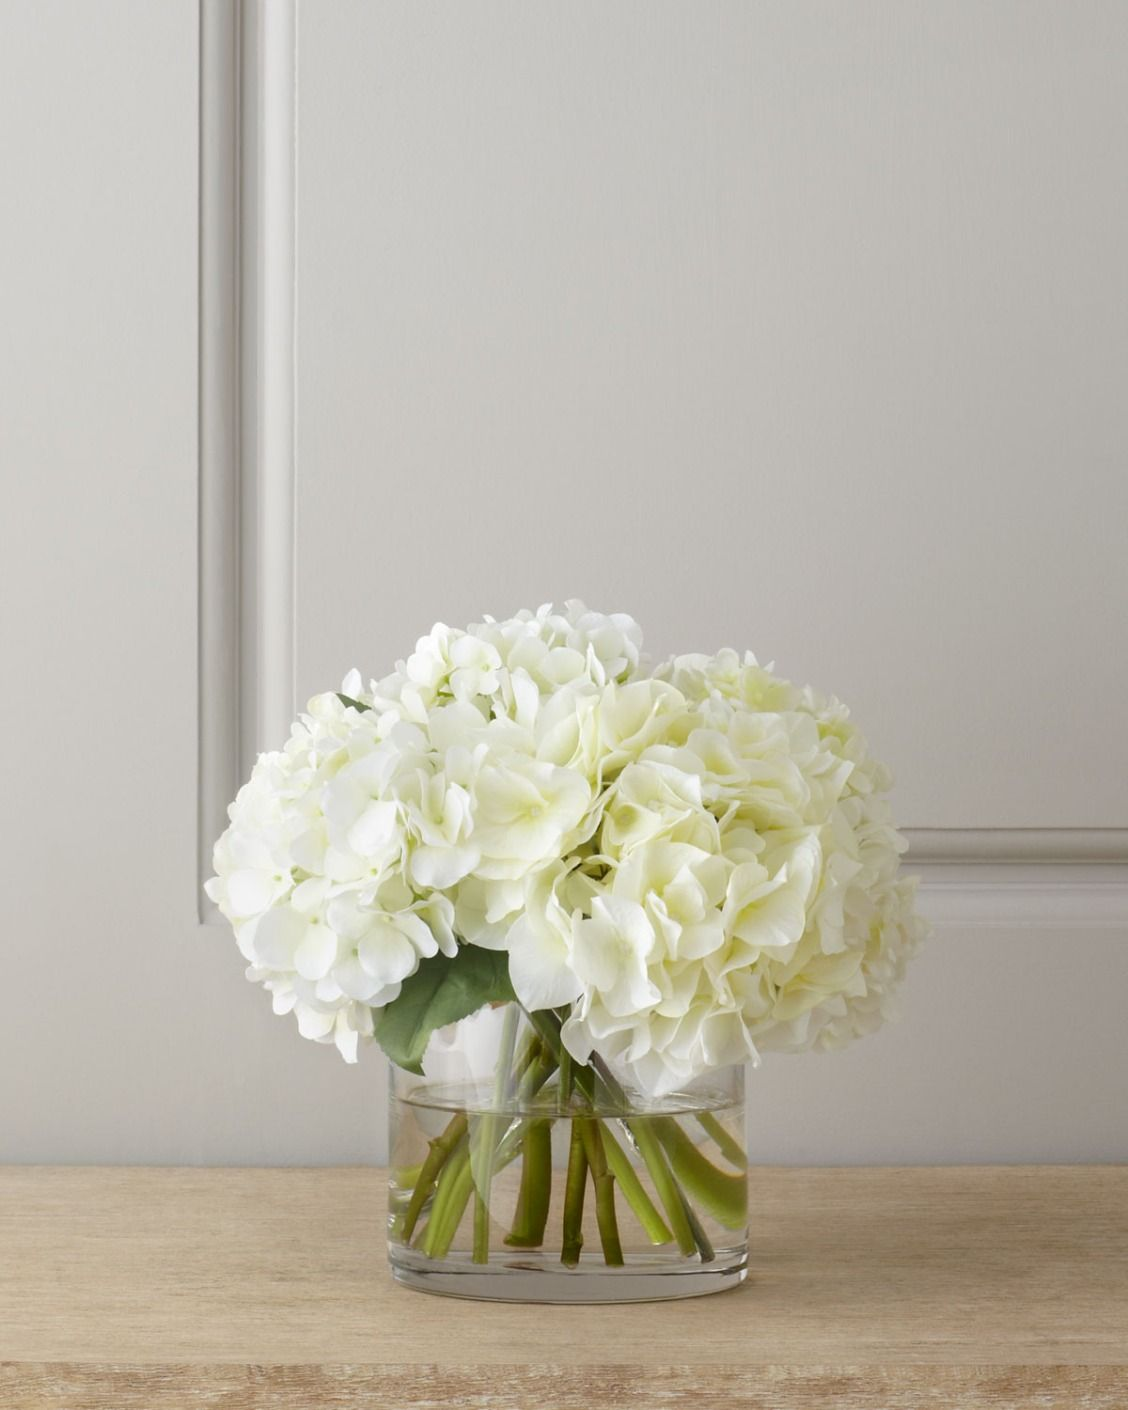 Diane James White Hydrangea Bouquet | Trending: Fabulous Florals ...